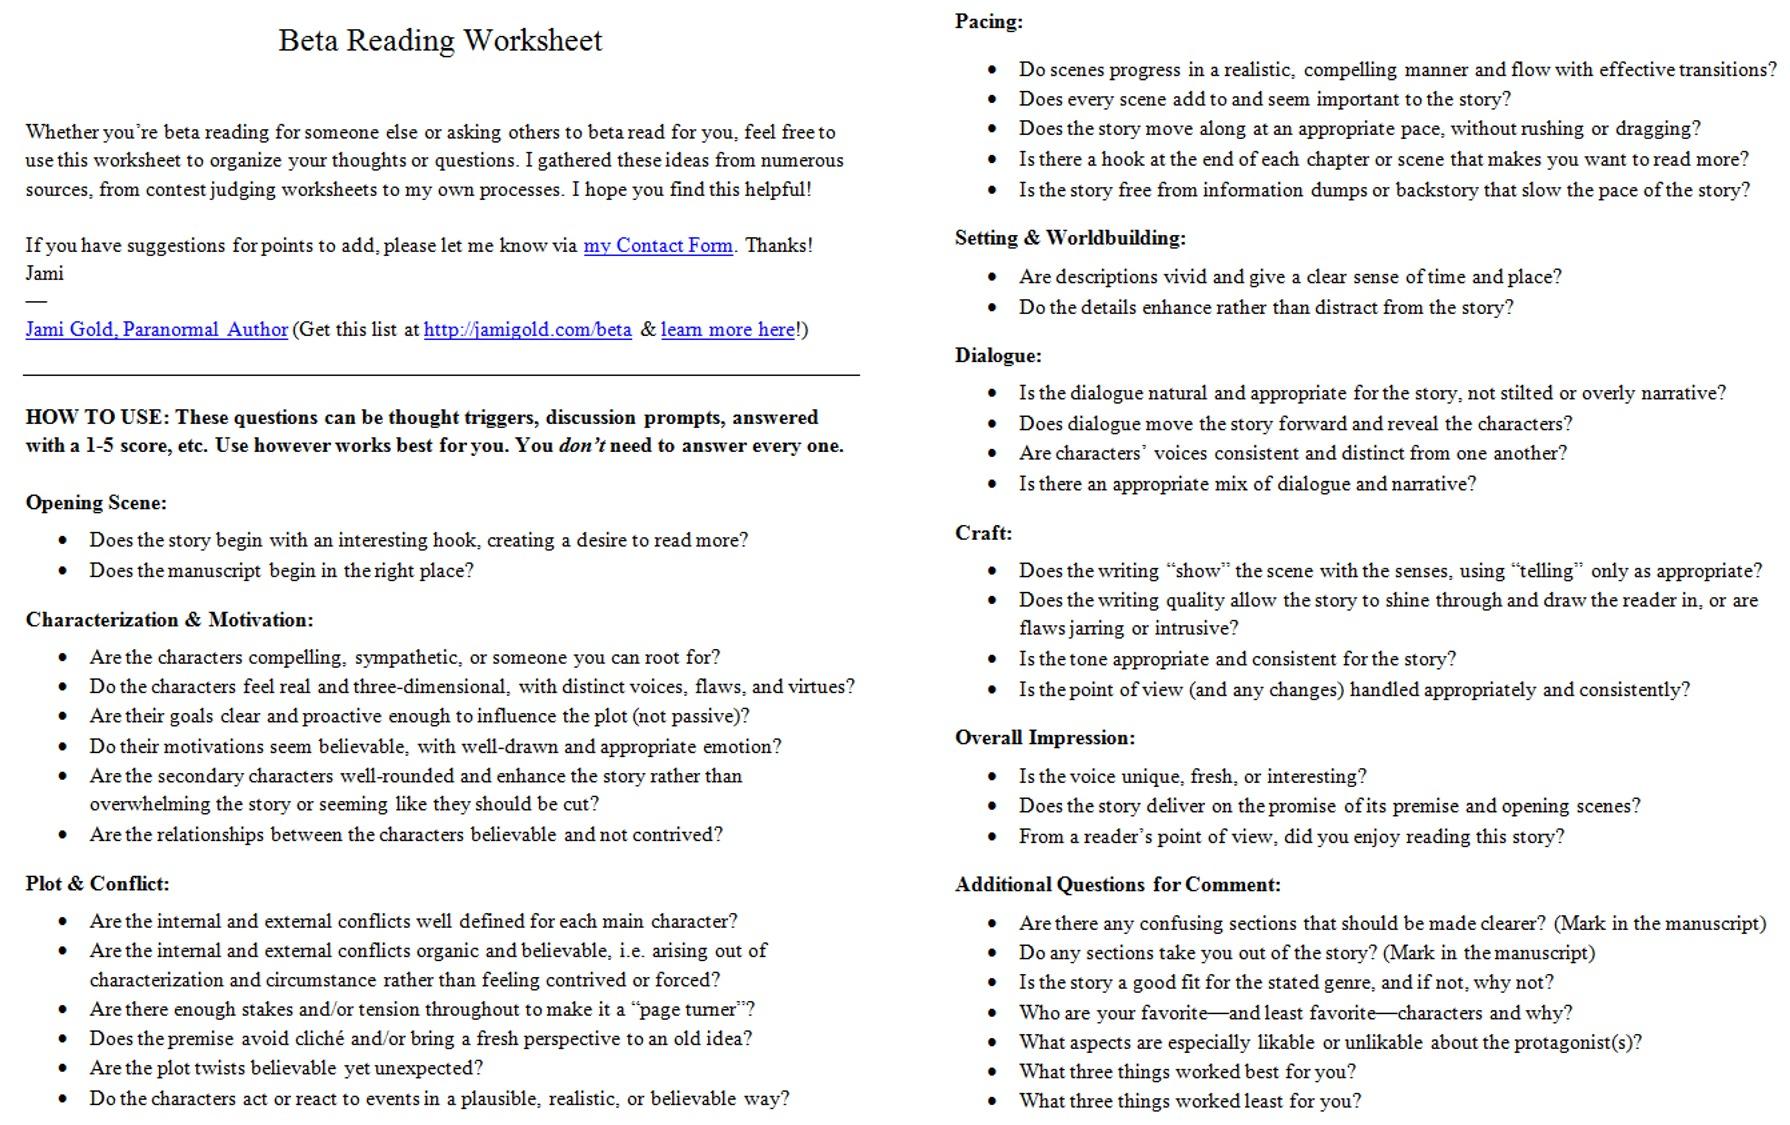 Aldiablosus  Sweet Worksheets For Writers  Jami Gold Paranormal Author With Fetching Screen Shot Of The Twopage Beta Reading Worksheet With Beautiful Definition Of Worksheets Also Clockwise And Anticlockwise Worksheets In Addition Kumon Japanese Worksheets And Fundamental Algebra Worksheets As Well As Exponent Rules Worksheet Algebra Additionally Math And English Worksheets From Jamigoldcom With Aldiablosus  Fetching Worksheets For Writers  Jami Gold Paranormal Author With Beautiful Screen Shot Of The Twopage Beta Reading Worksheet And Sweet Definition Of Worksheets Also Clockwise And Anticlockwise Worksheets In Addition Kumon Japanese Worksheets From Jamigoldcom